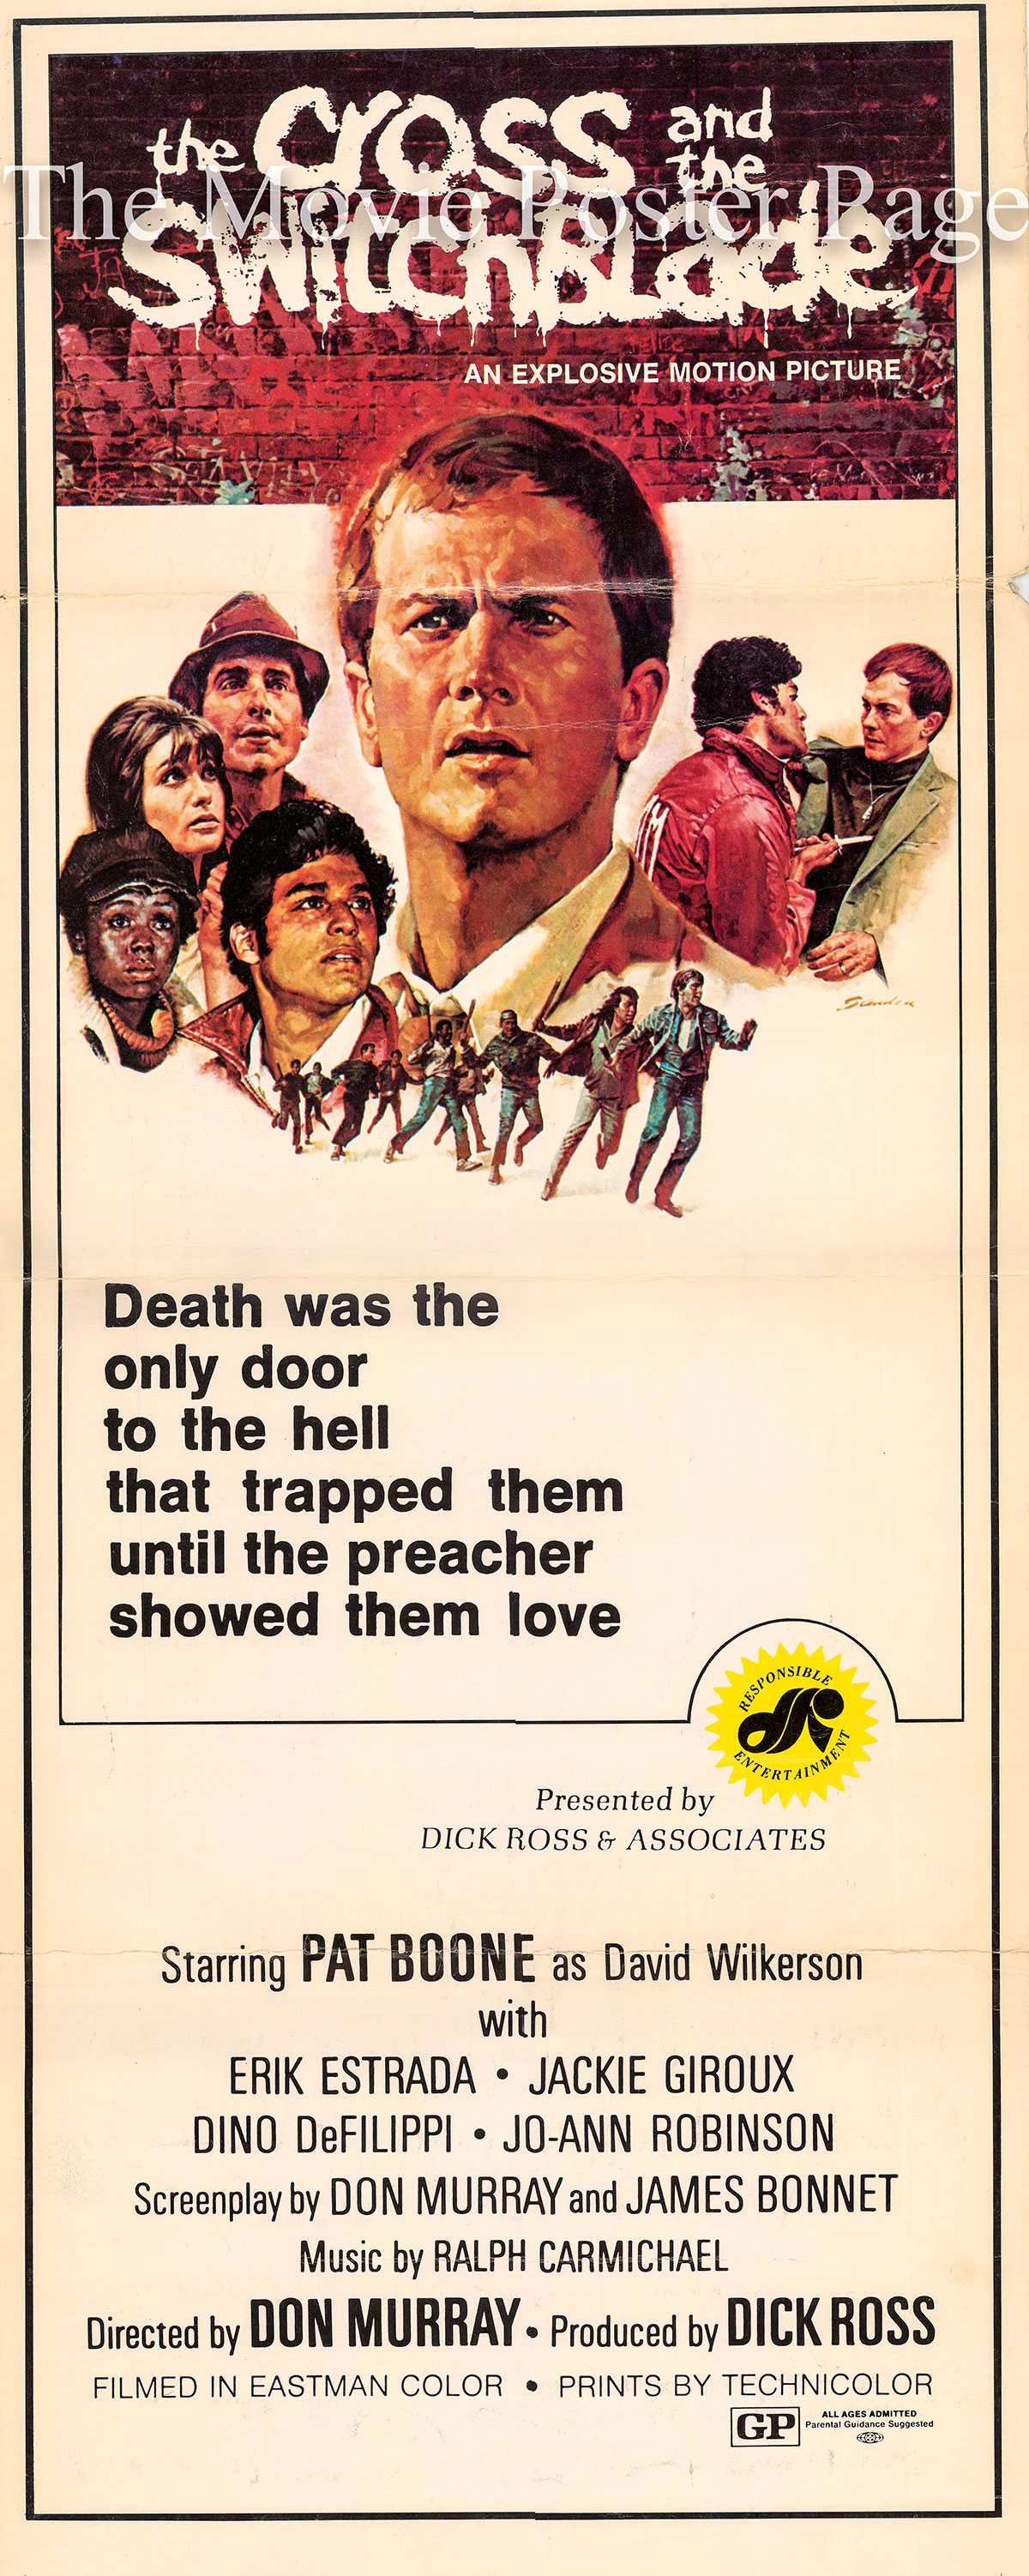 Pictured is a US insert promotional poster for the 1970 Don Murray film The Cross and the Switchblade  starring Pat Boone.